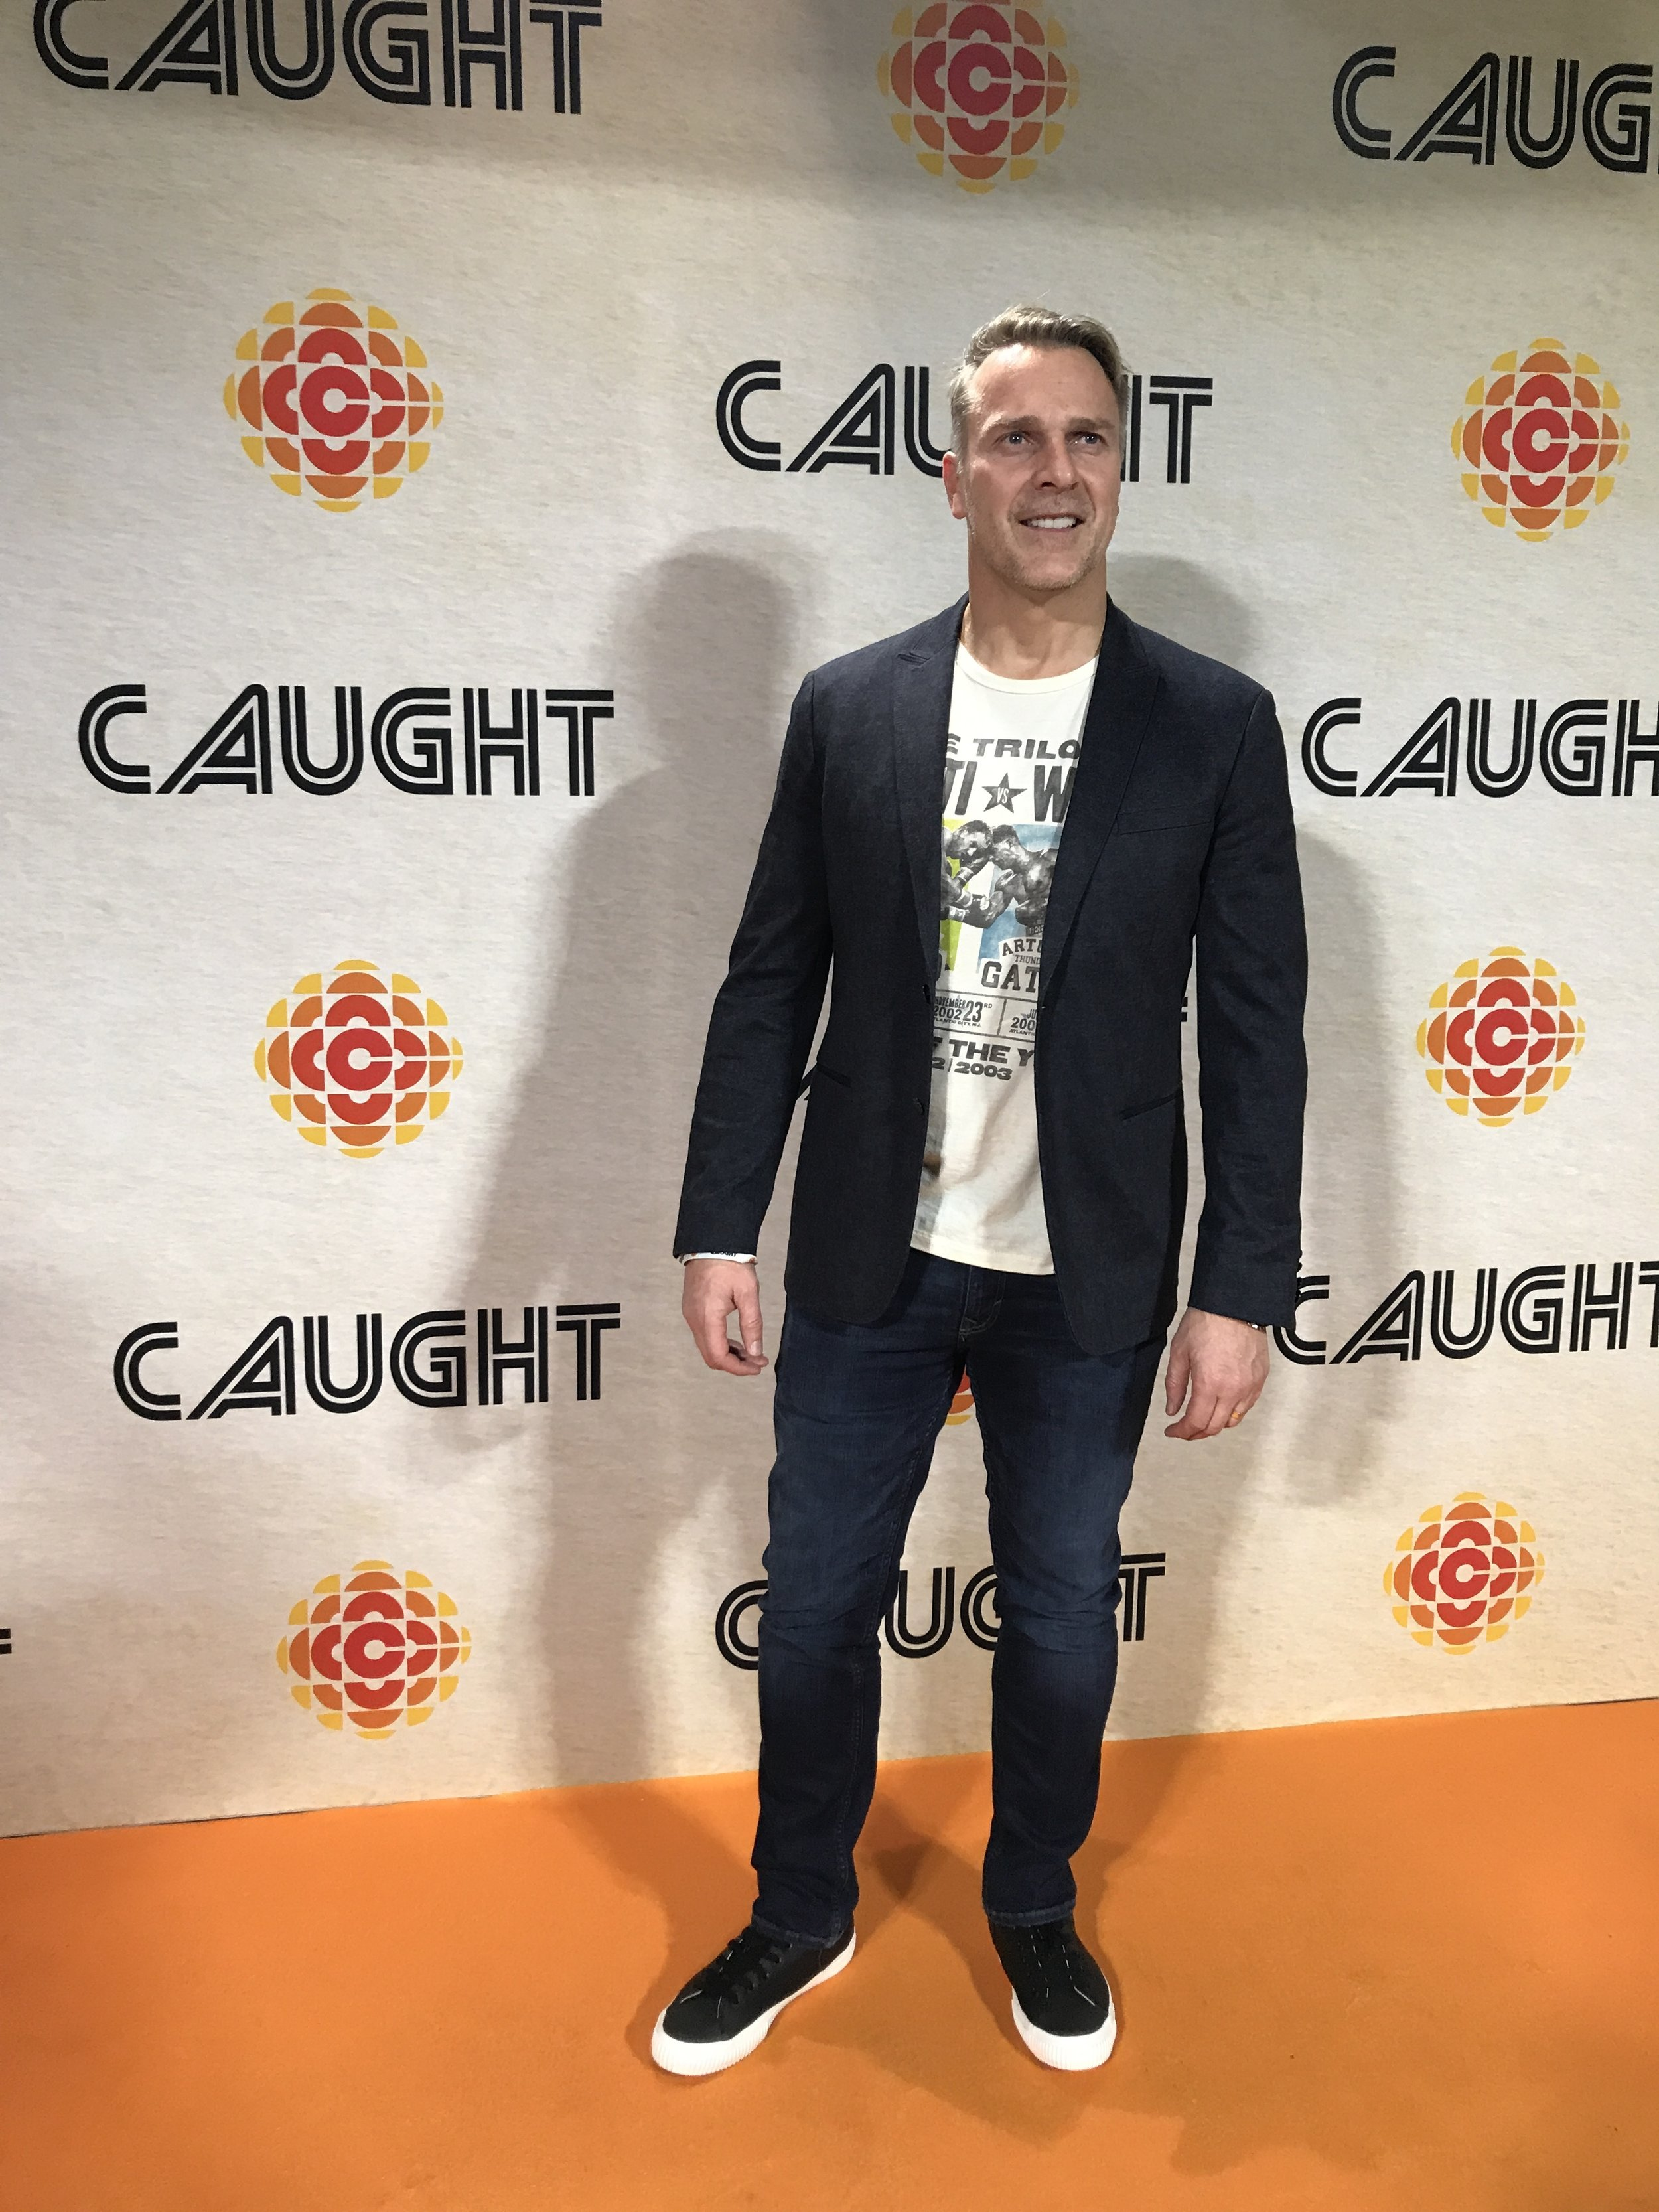 Mike Dopud at the  Caught  launch event in Toronto in February 2018.